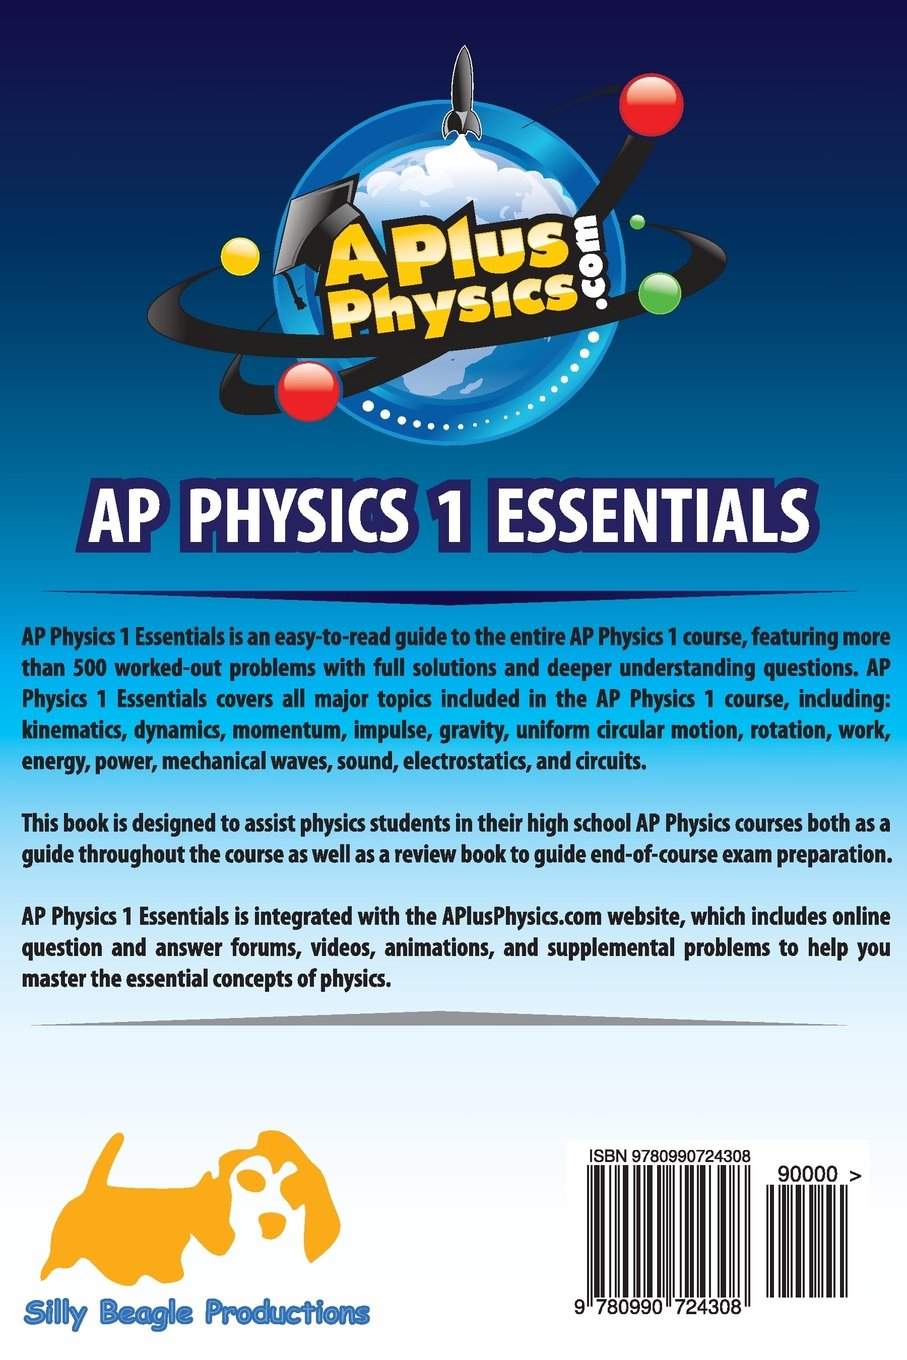 ap physics essentials an aplusphysics guide dan fullerton ap physics 1 essentials an aplusphysics guide dan fullerton 9780990724308 books ca